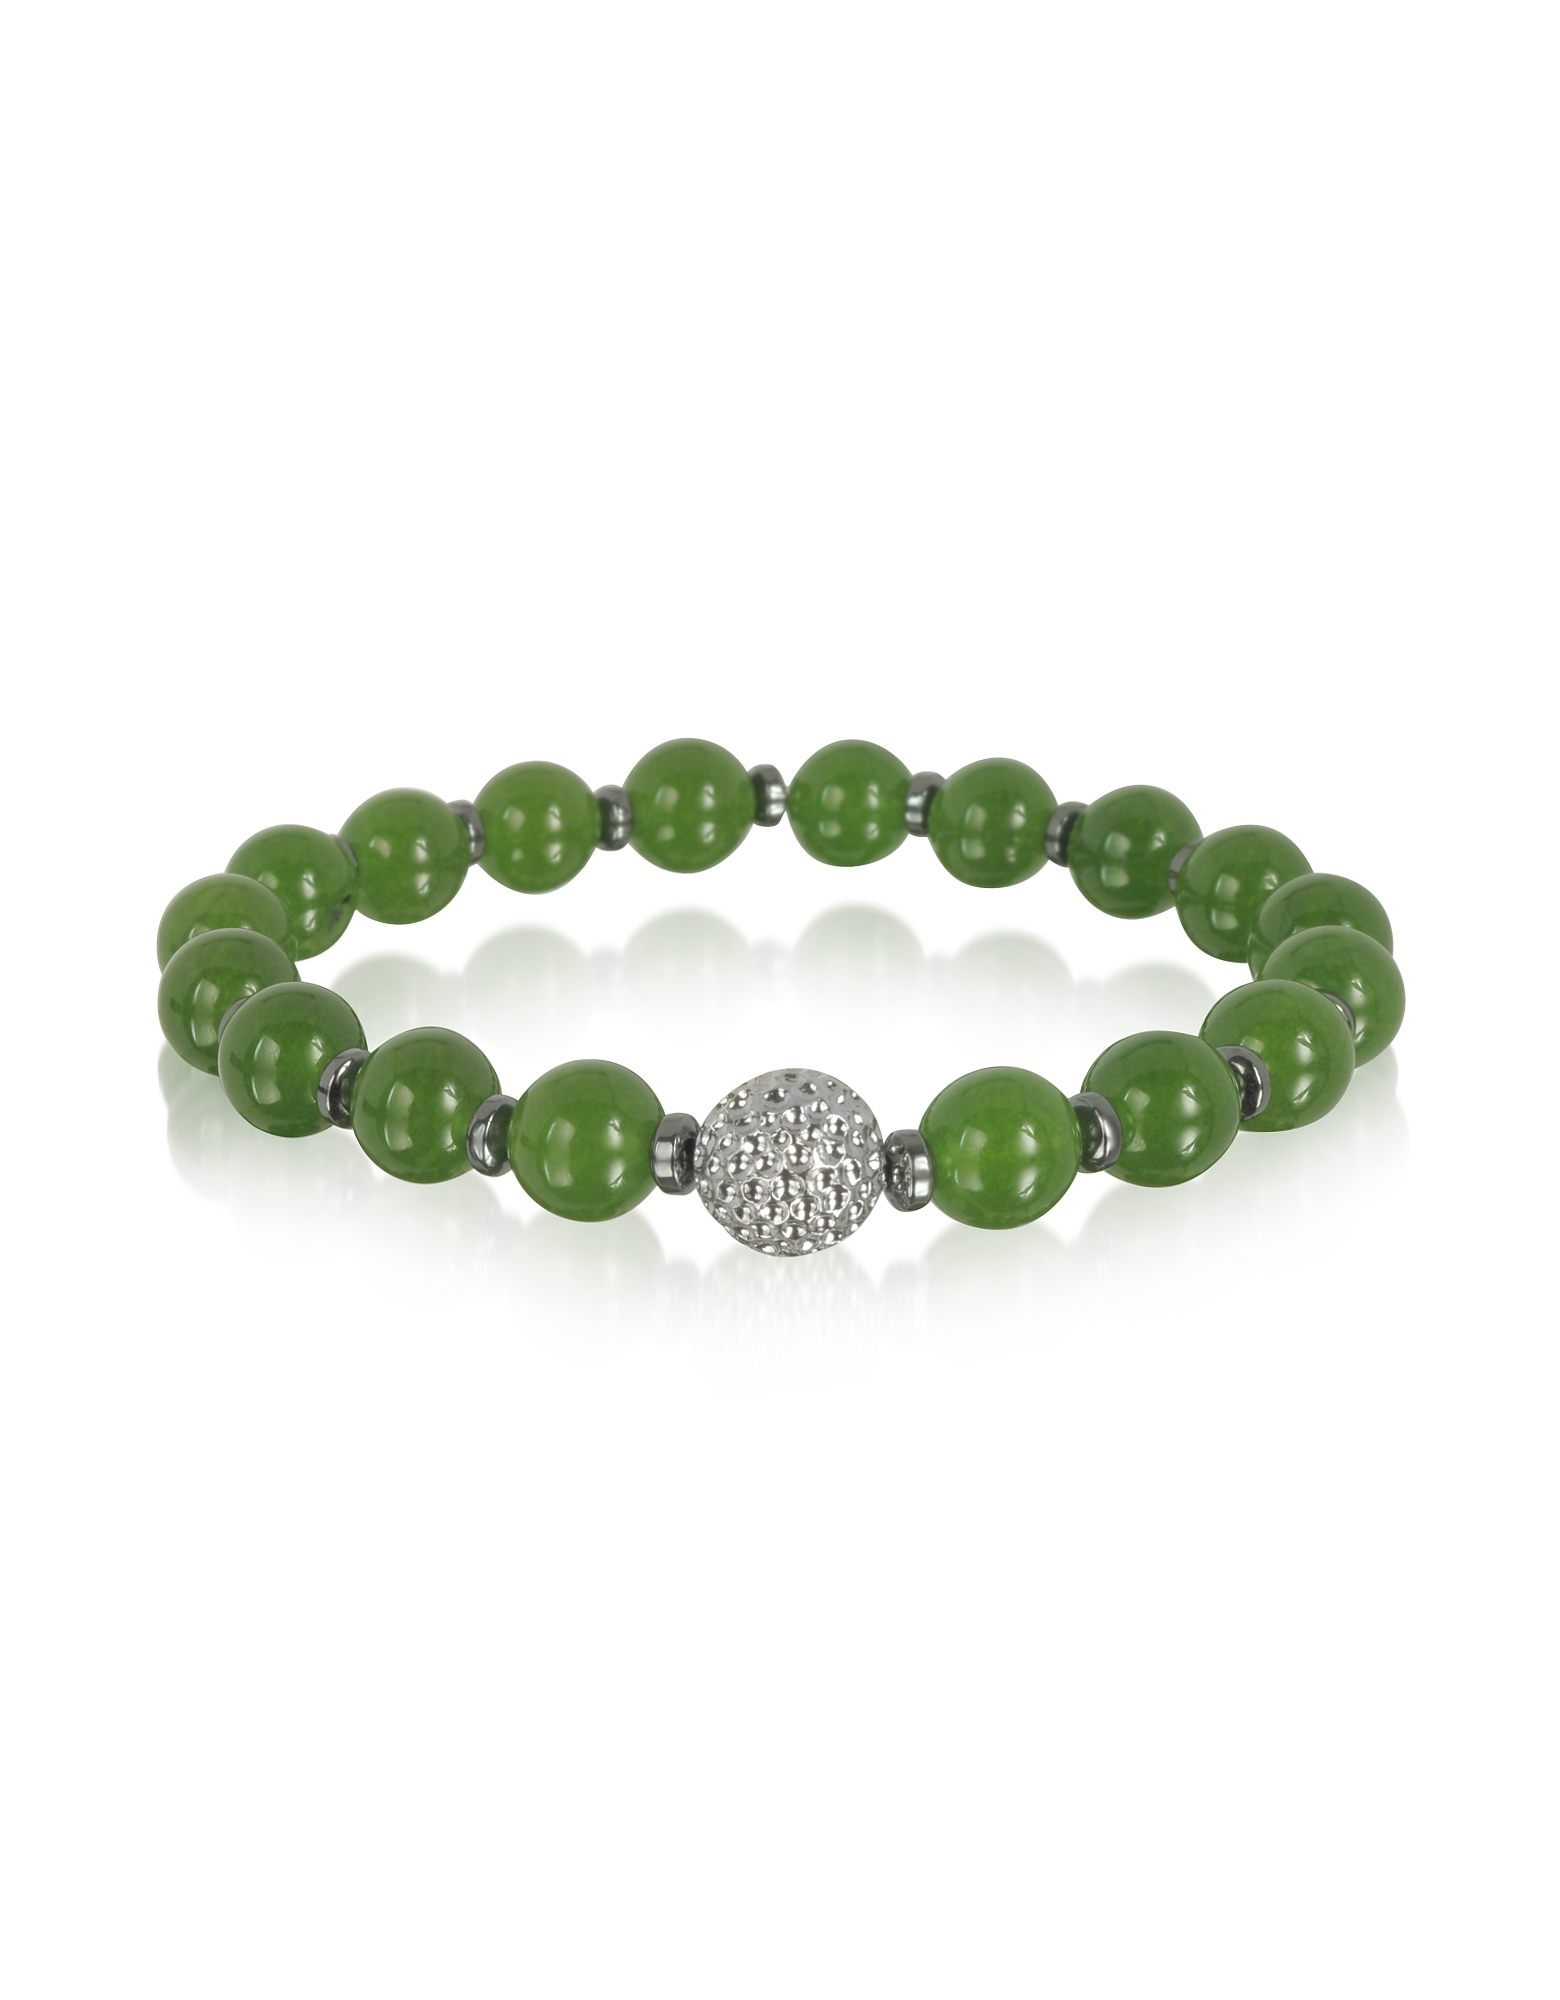 Image of Blackbourne Designer Men's Bracelets, Jade Small Stone Men's Bracelet w/Brass Golf Ball